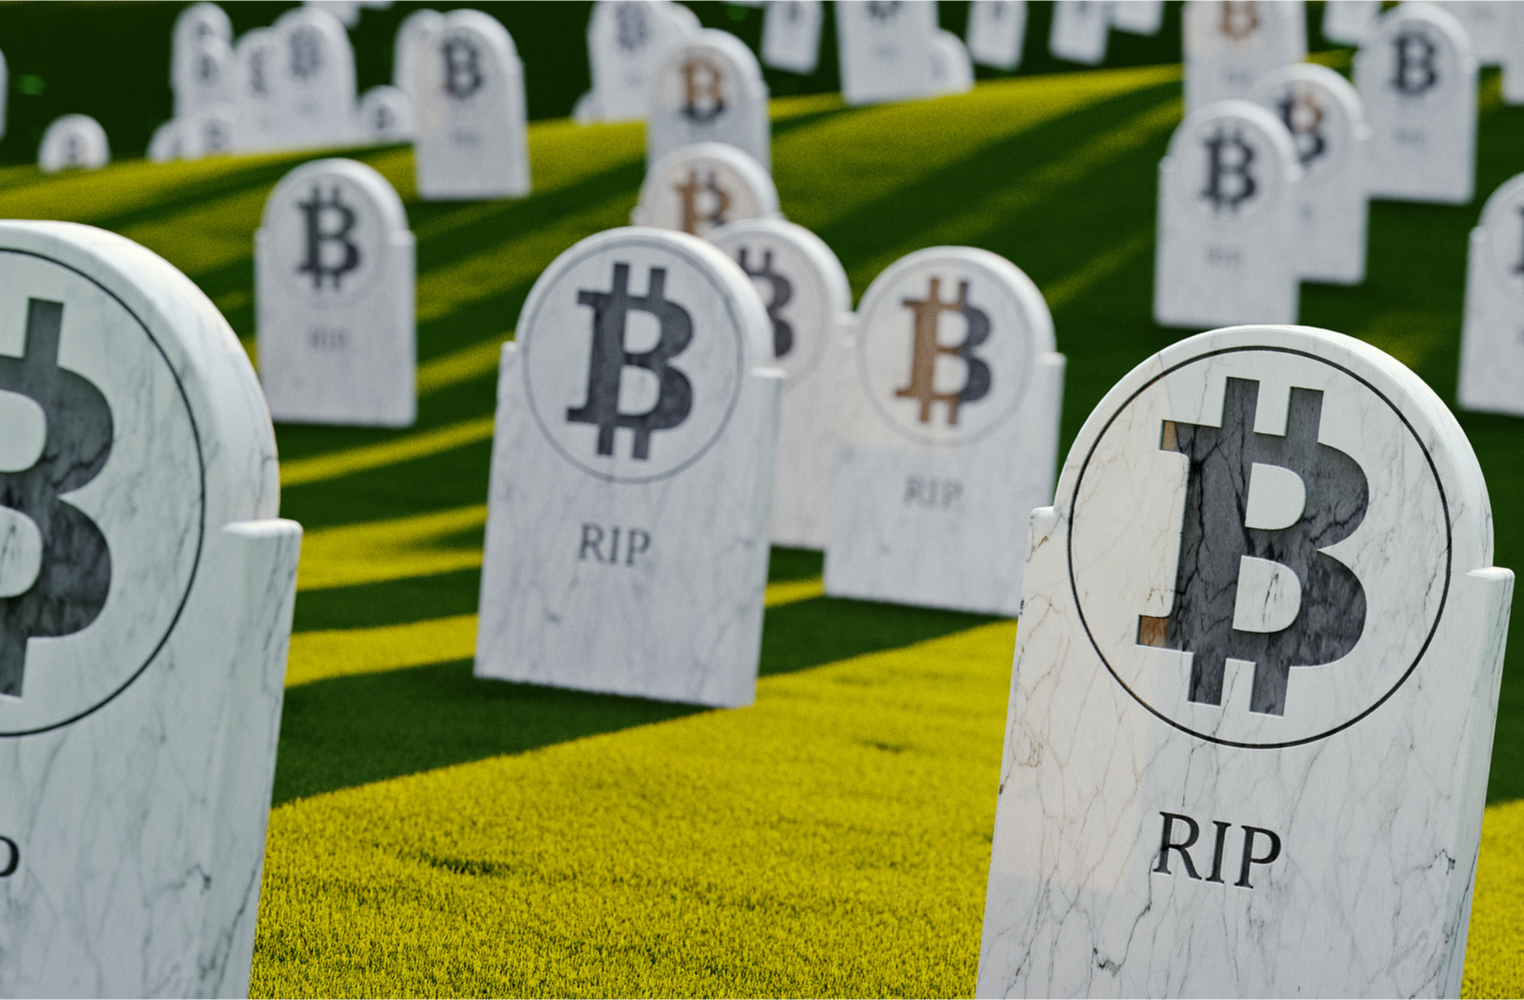 Rumors of Bitcoin's Death Are Greatly Exaggerated